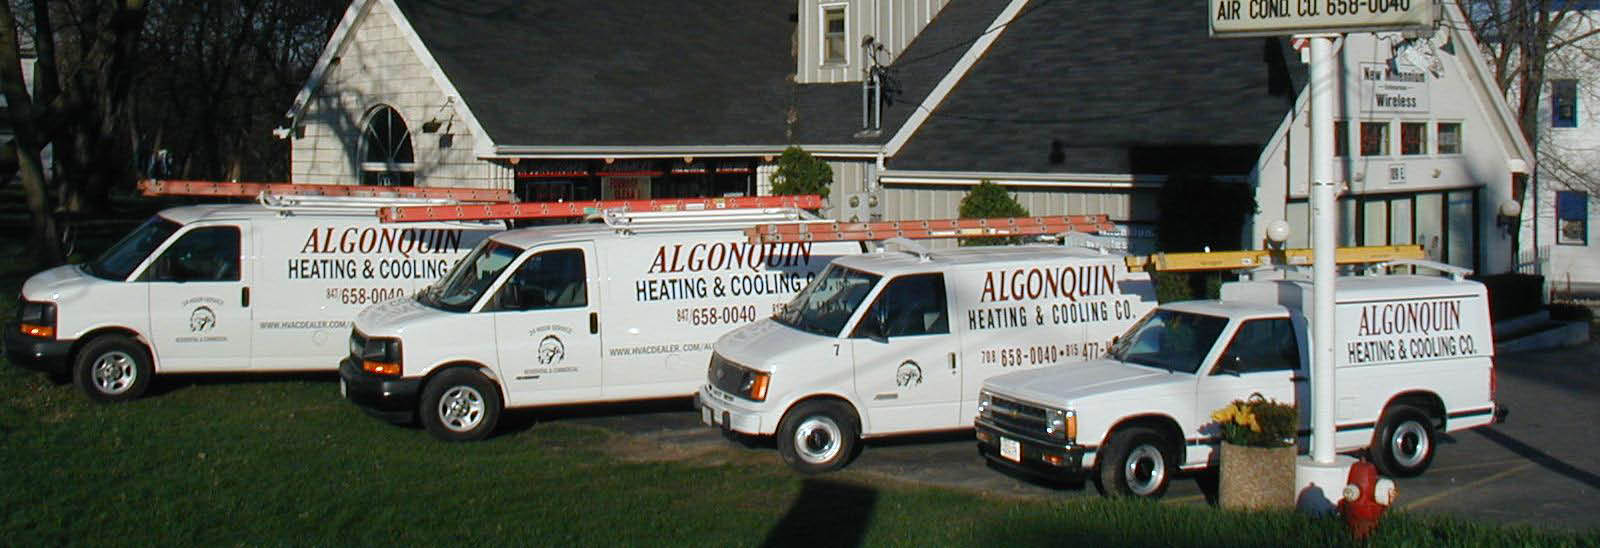 Algonquin Heating & Air Conditioning in Algonquin, IL Banner Ad